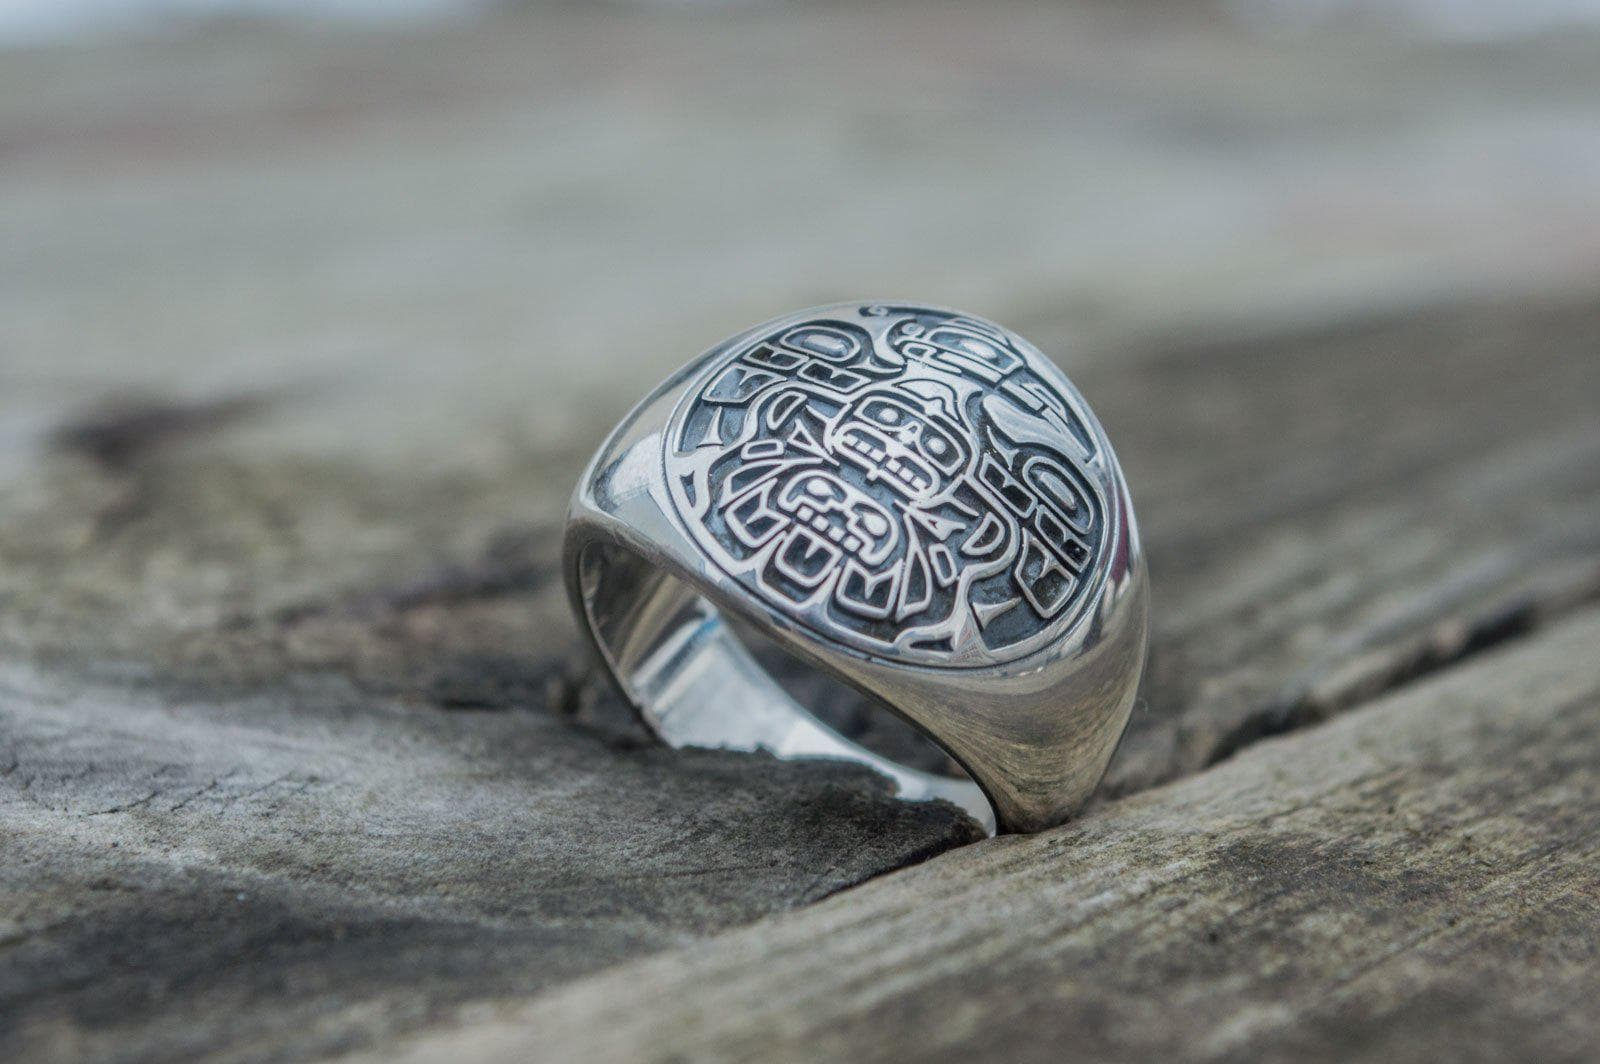 Rings Native American Sterling Silver Handcrafted Ring Ancient Treasures Ancientreasures Viking Odin Thor Mjolnir Celtic Ancient Egypt Norse Norse Mythology